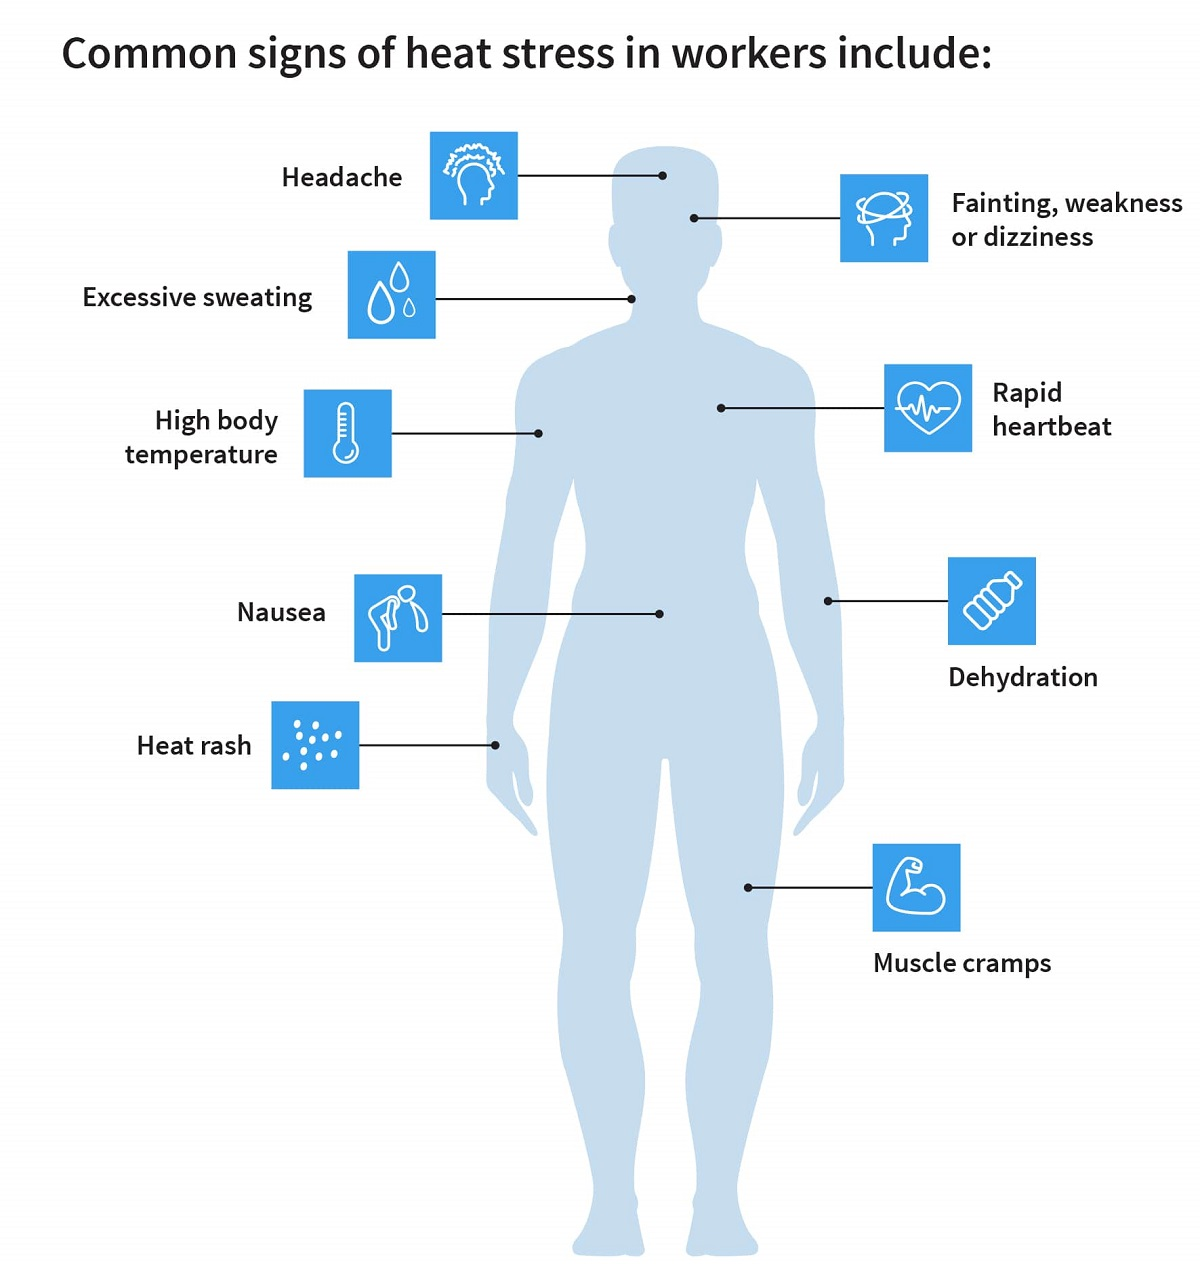 common signs of heat stress